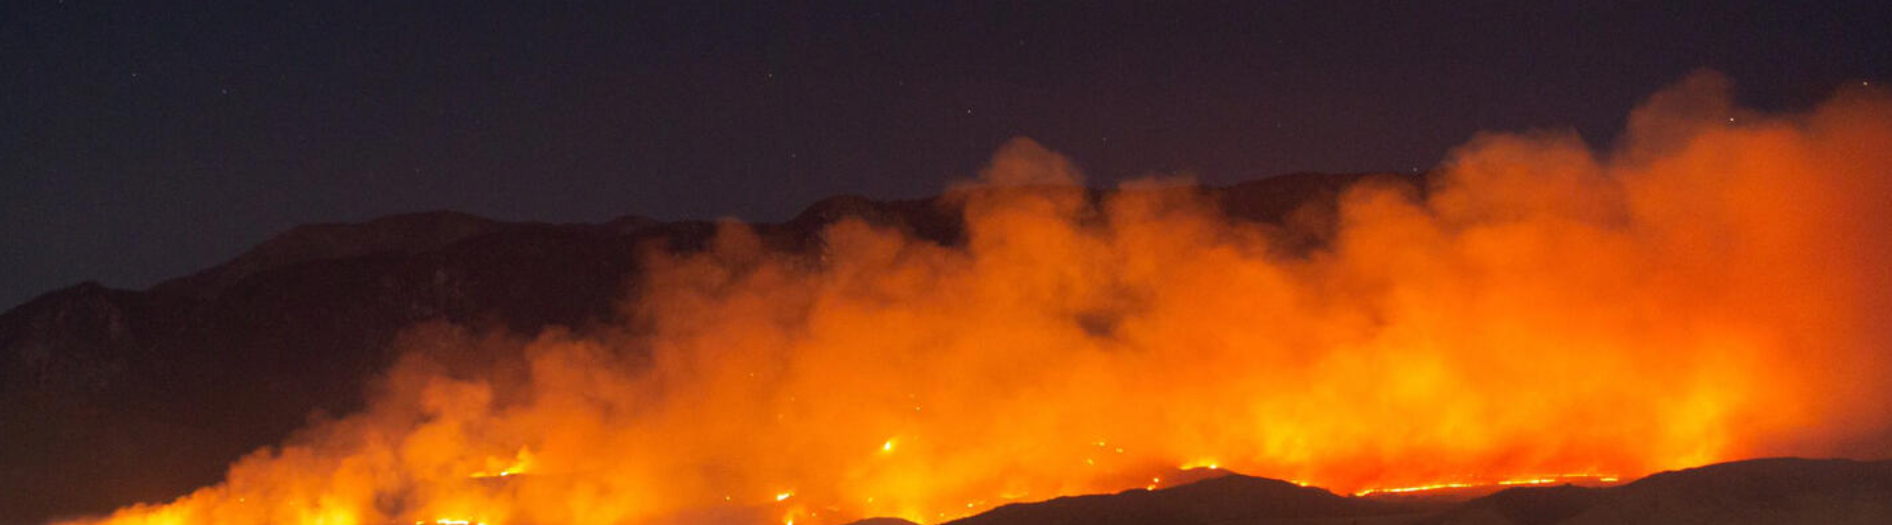 Wildfire Smoke Led to Excess COVID-19 Cases and Deaths.